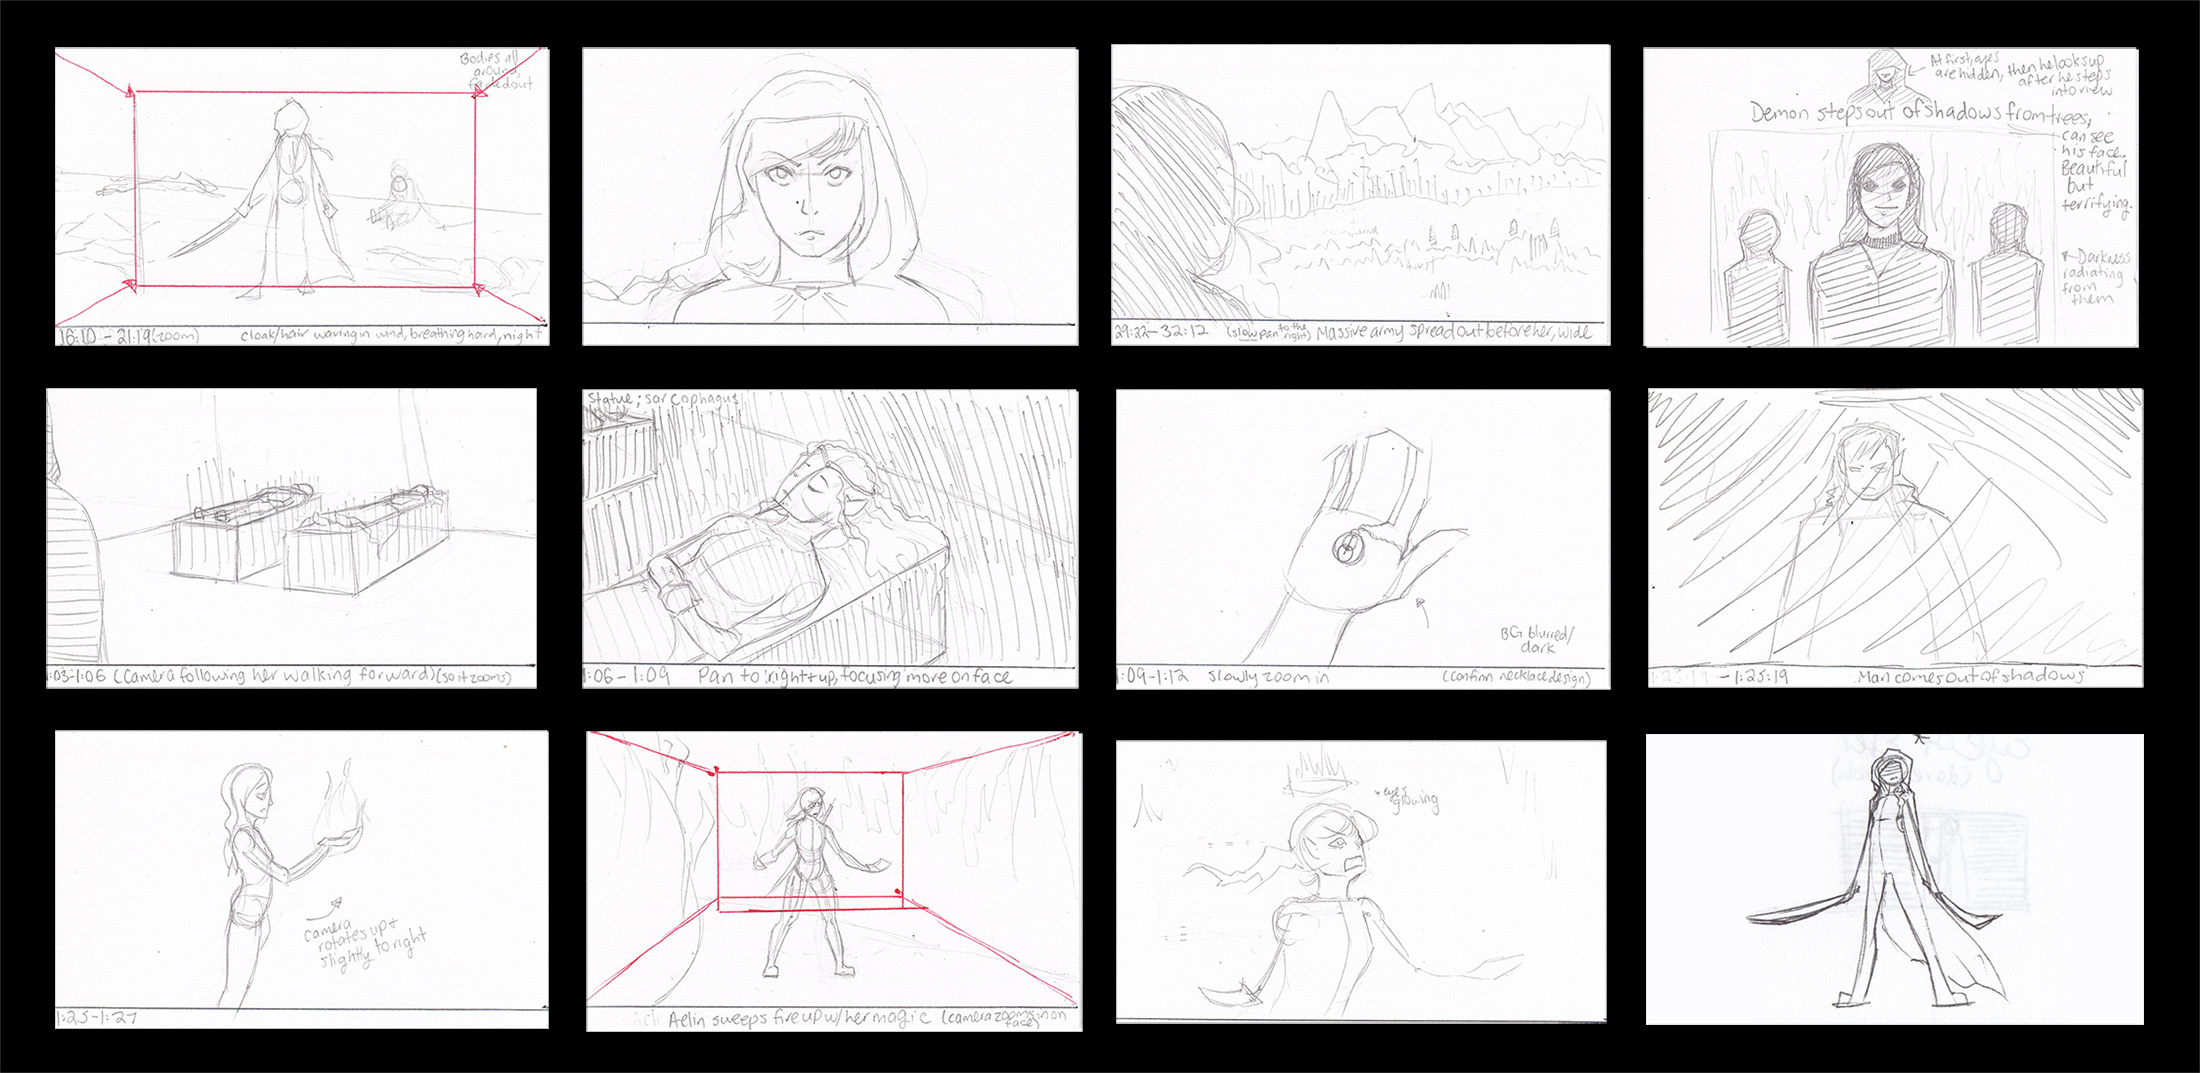 Black background with sketches arranged in rows and columns. Heroine before, during, and after battle. Facing villains – dark demons. Finding an amulet from a goddess. A strong character moves out of the shadows. Heroine discovers her powers of fire magic, uses them for good against the evil. Heroine holding swords.